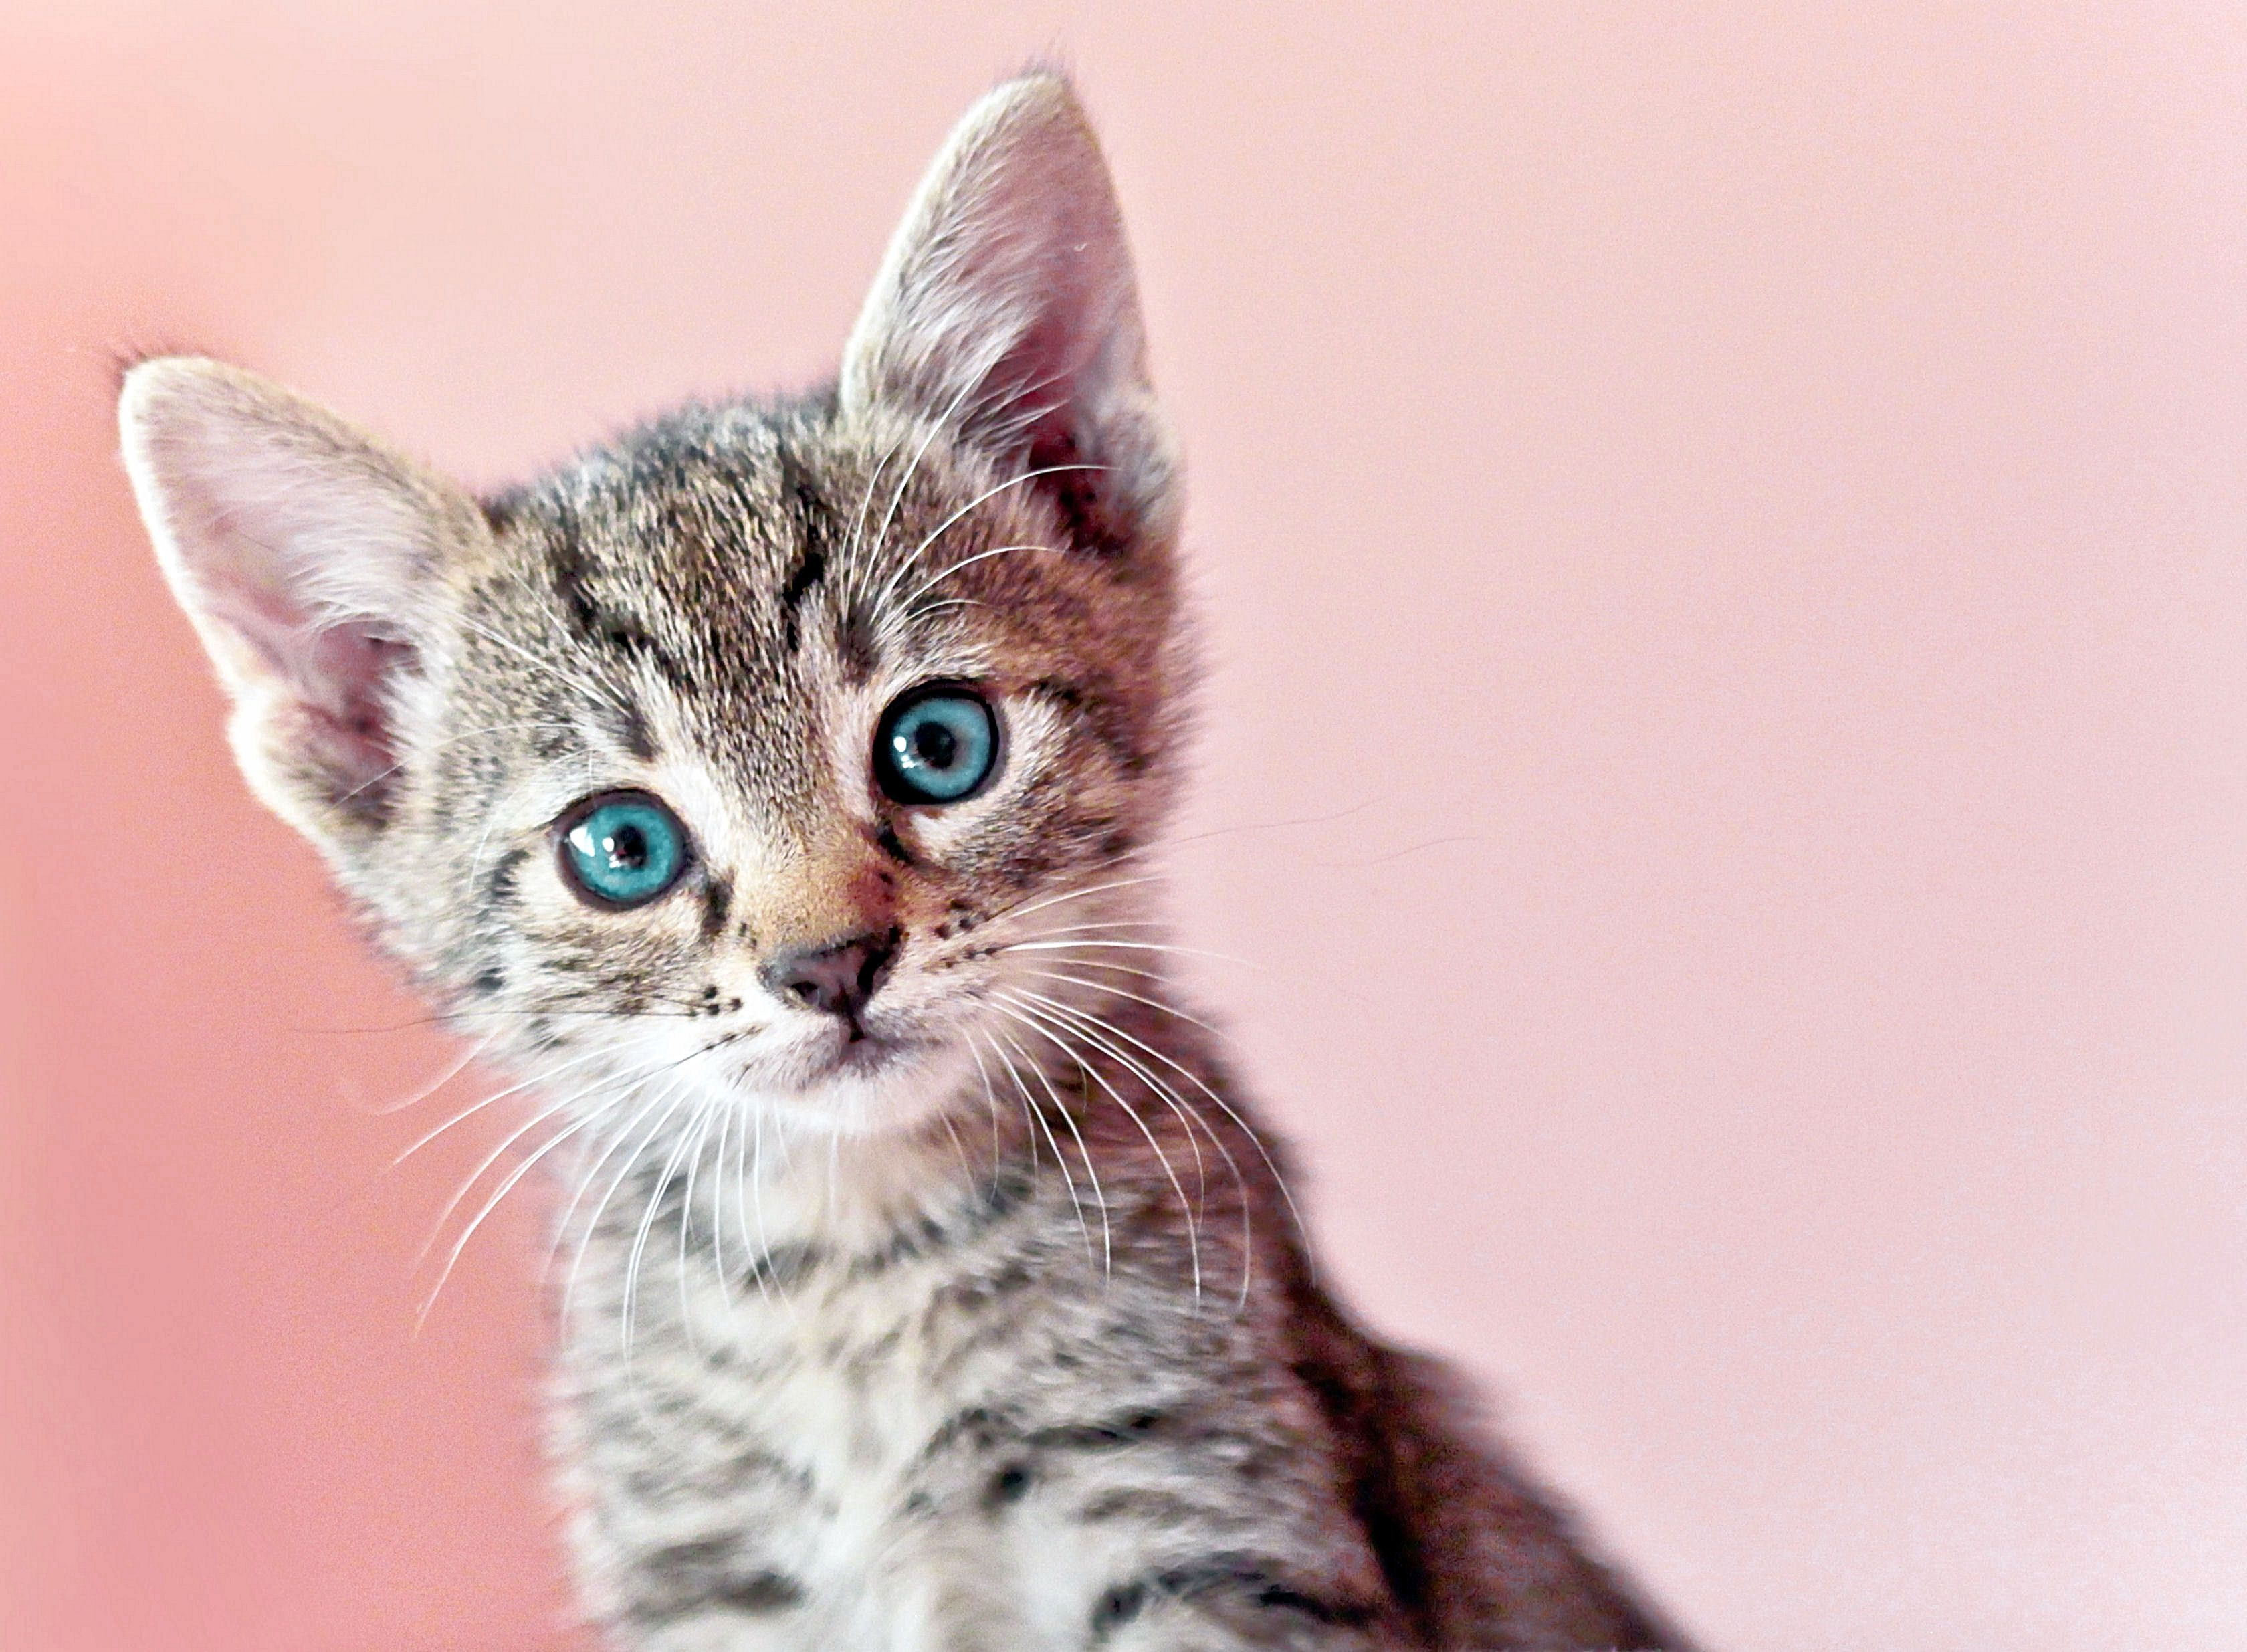 You Have To See The 100 Years Of Kitten Beauty Video Cute Baby Animals Kittens Cutest Kittens And Puppies